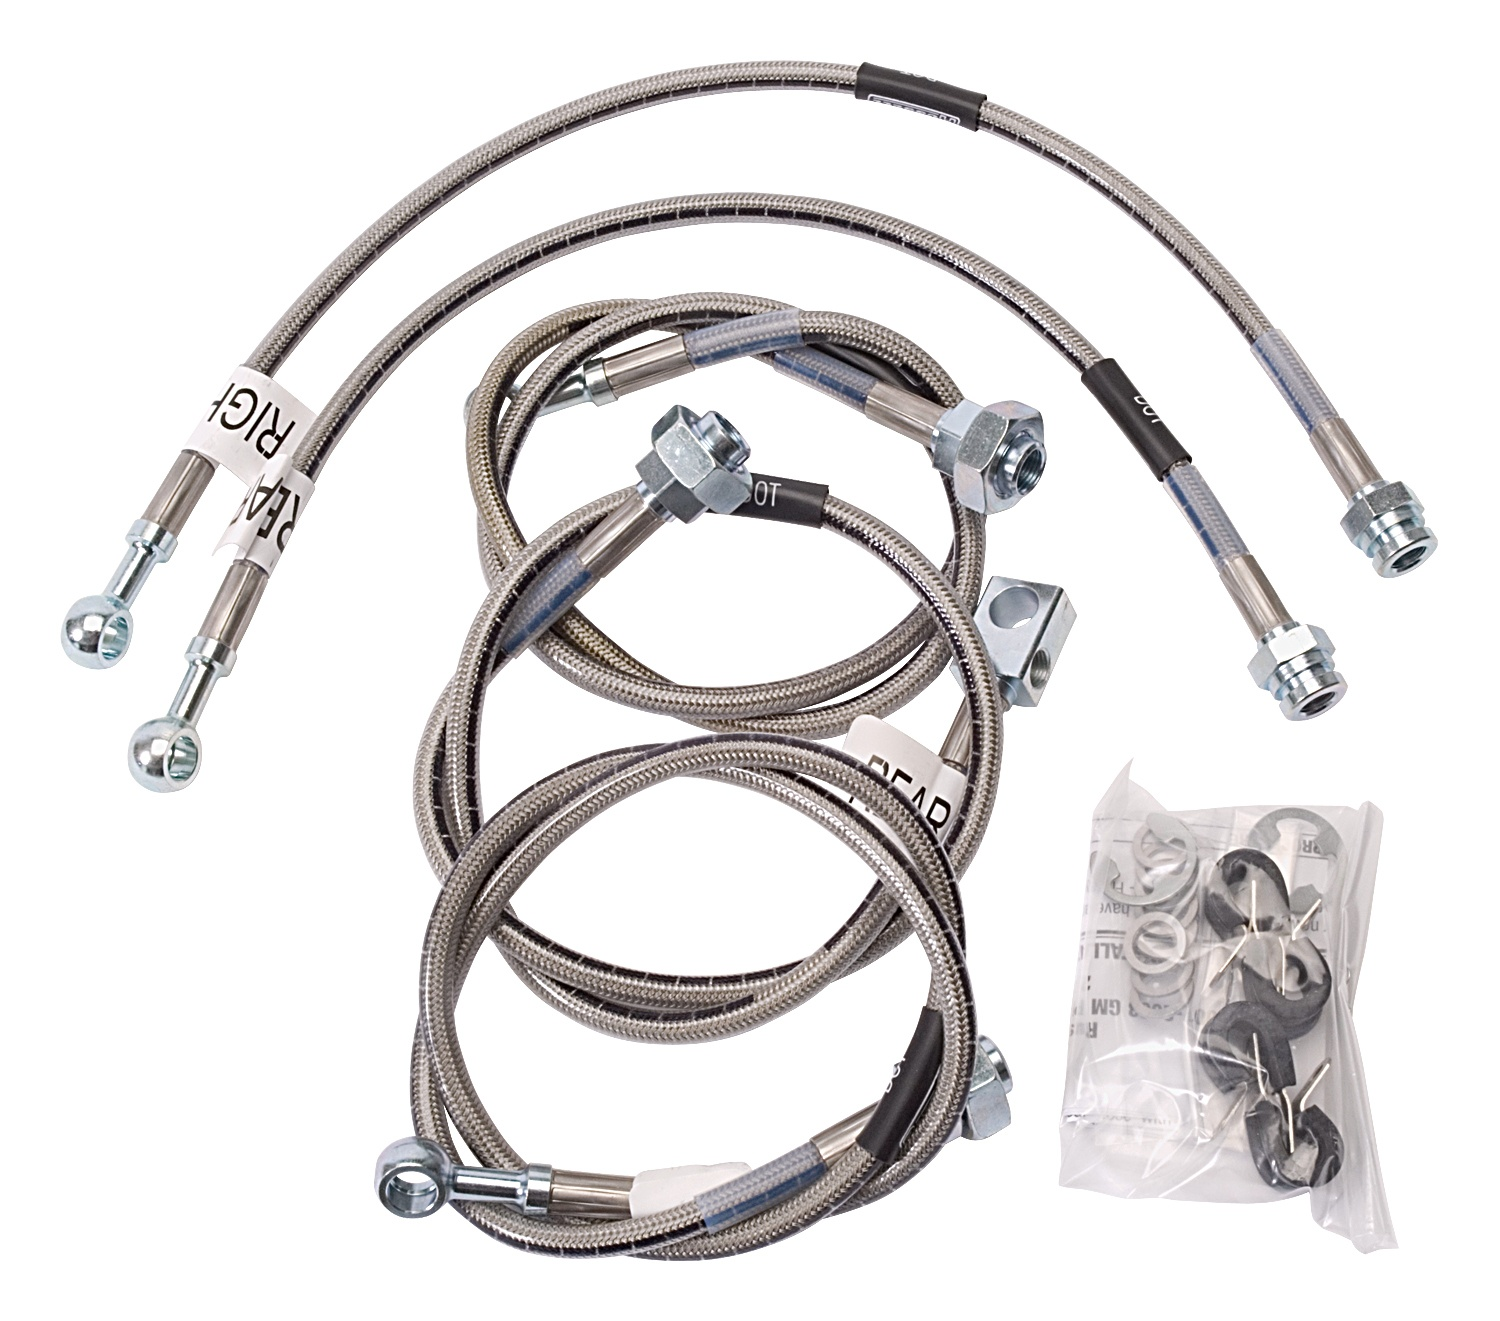 ... Legal Brake Line Assembly Hose Kit GMC Sierra 3500 2500 HD id | eBay